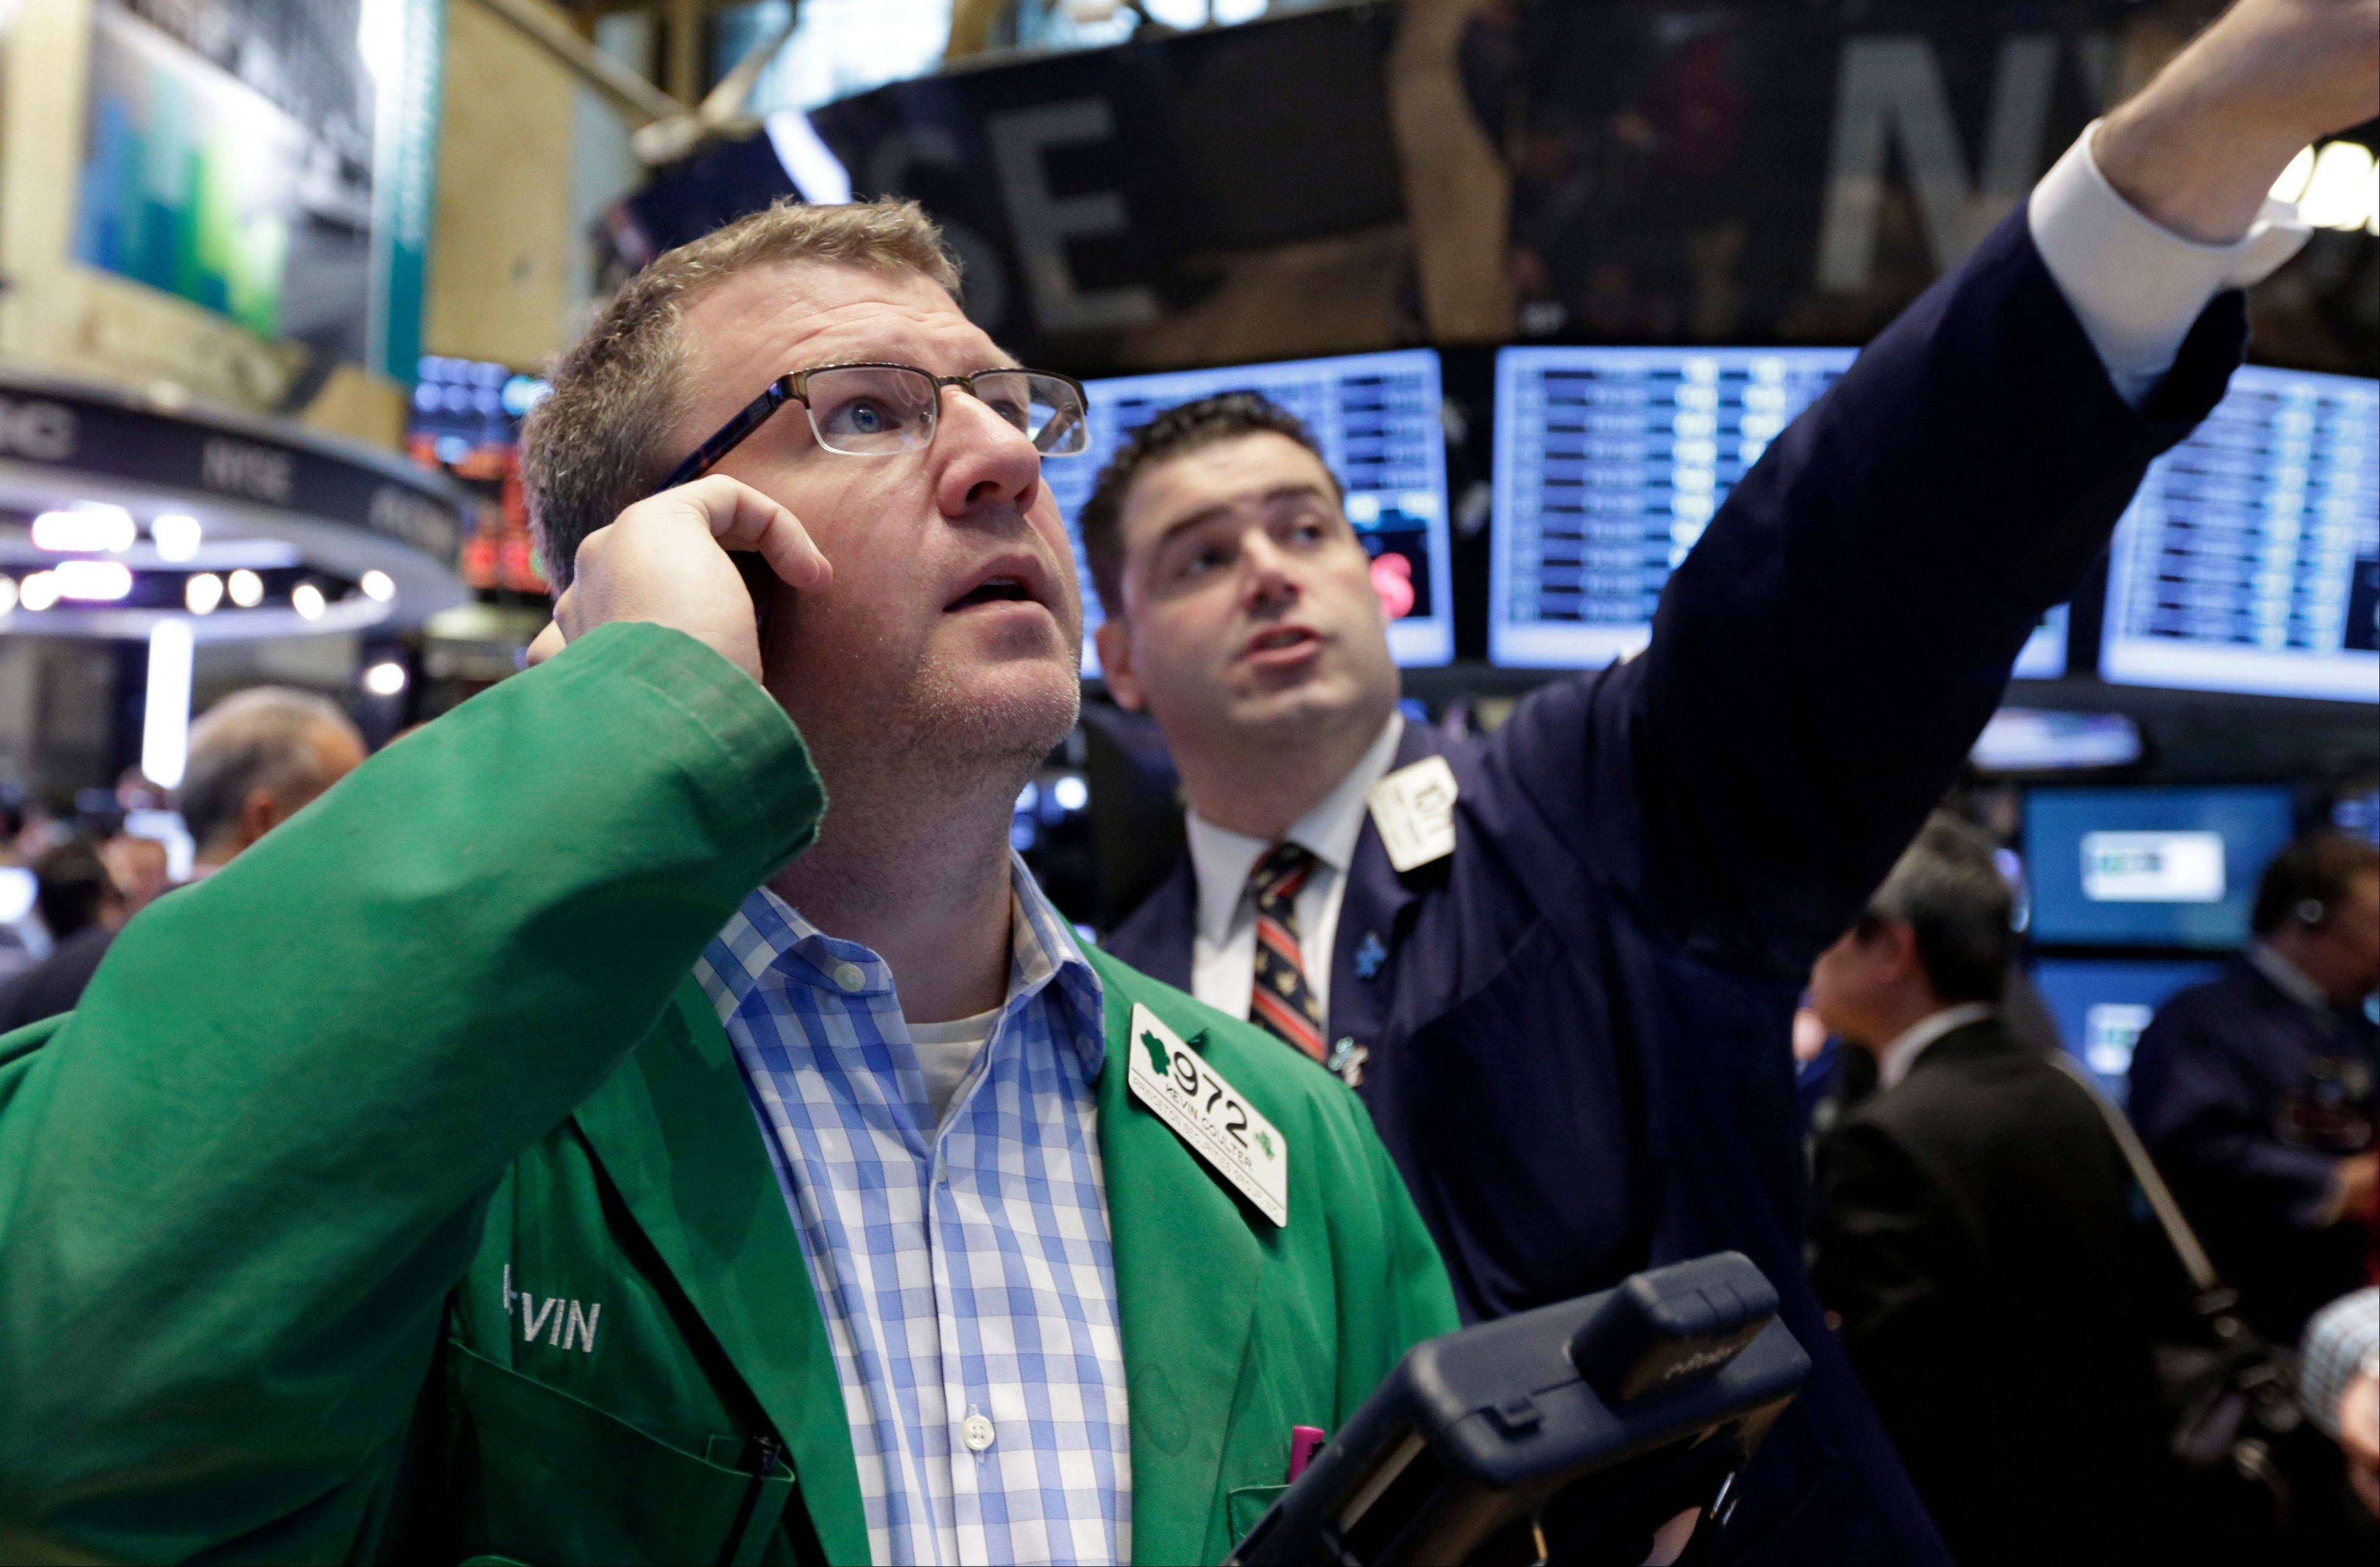 U.S. stocks rose, with the Standard & Poor's 500 Index rebounding from its first monthly loss since October, as reports showing improved manufacturing from Japan to the U.S. bolstered confidence in the global economy.